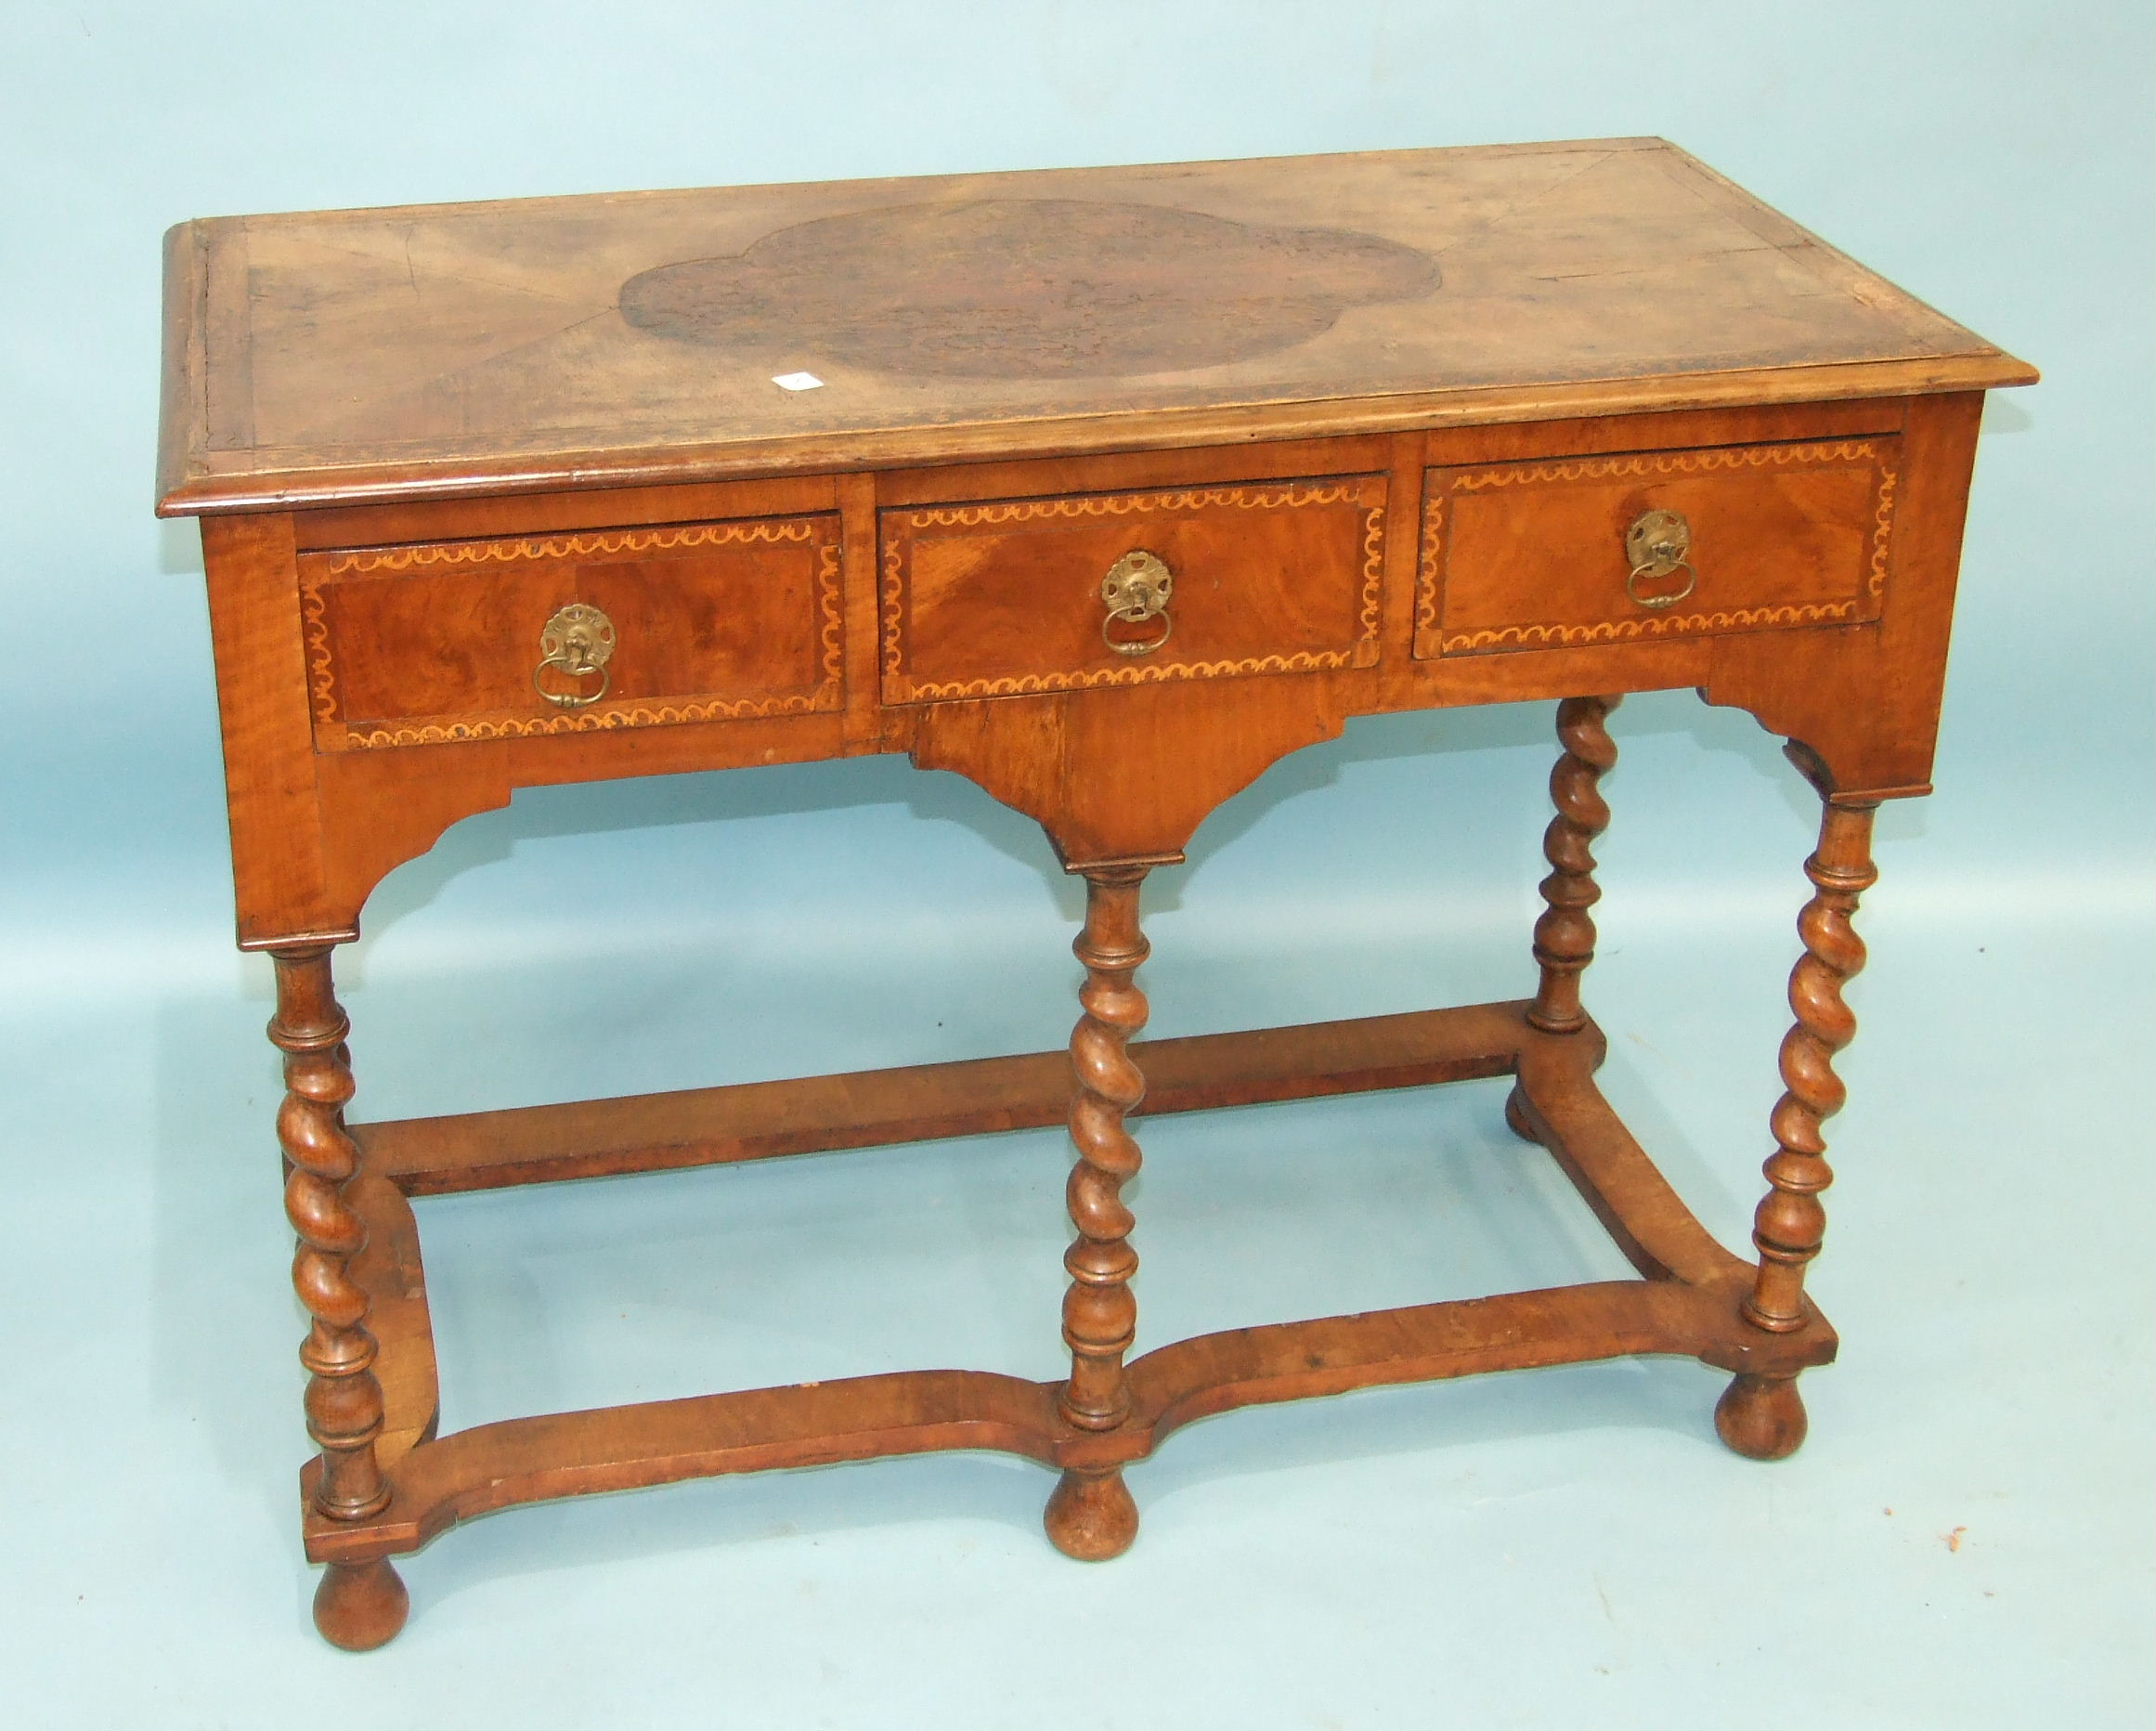 Lot 101 - An 18th century inlaid walnut side table, the top and three frieze drawers on spiral-twist legs